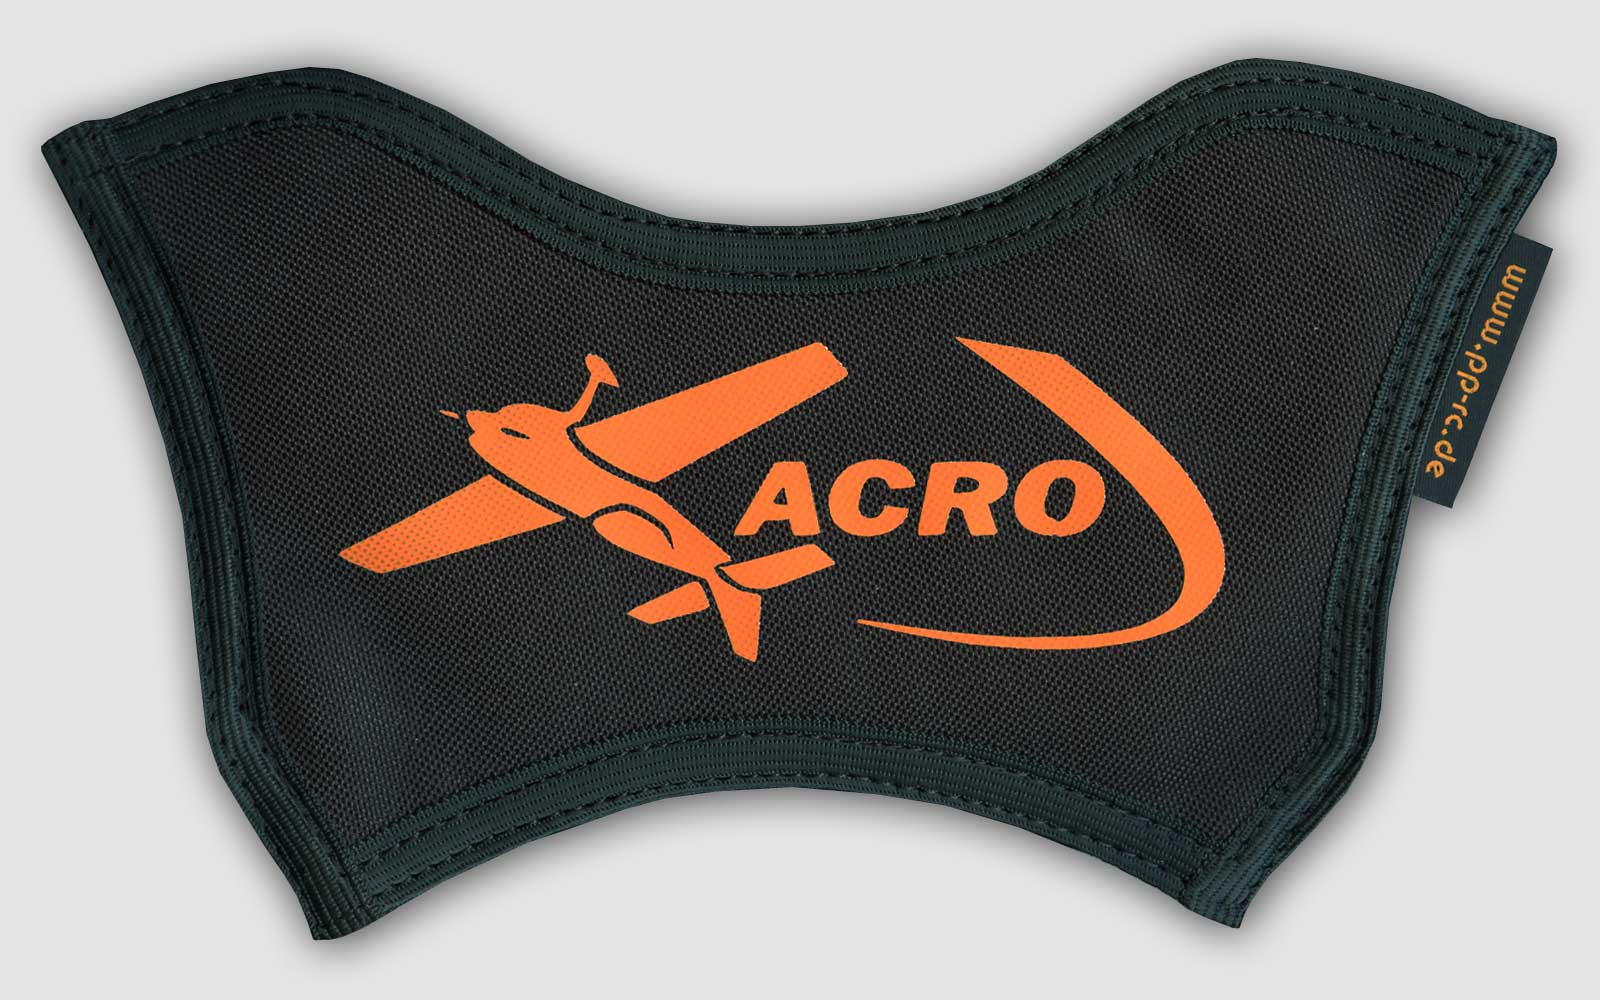 Acro 01 - Transmitter cross-over strap with motive - Image 5